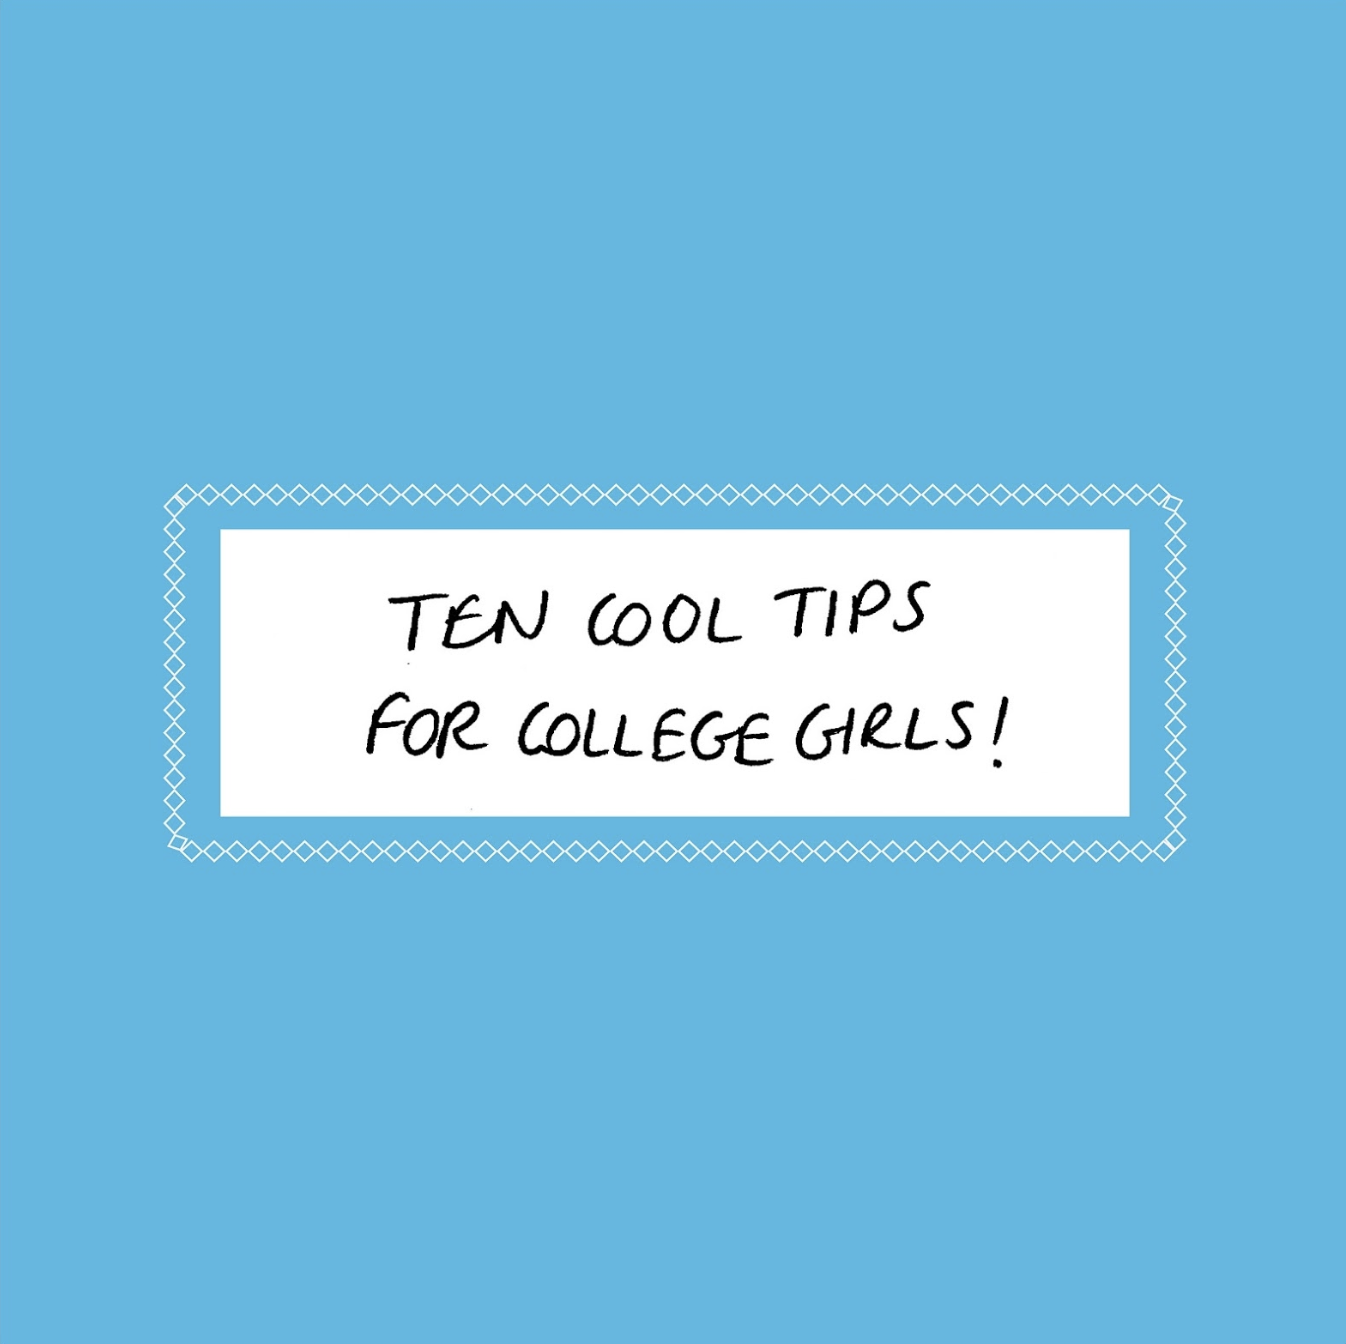 Ten Cool Tips for College Girls! by Jody Donahue for GalsOnCampus.com/GirlTalk  by Emma Arett